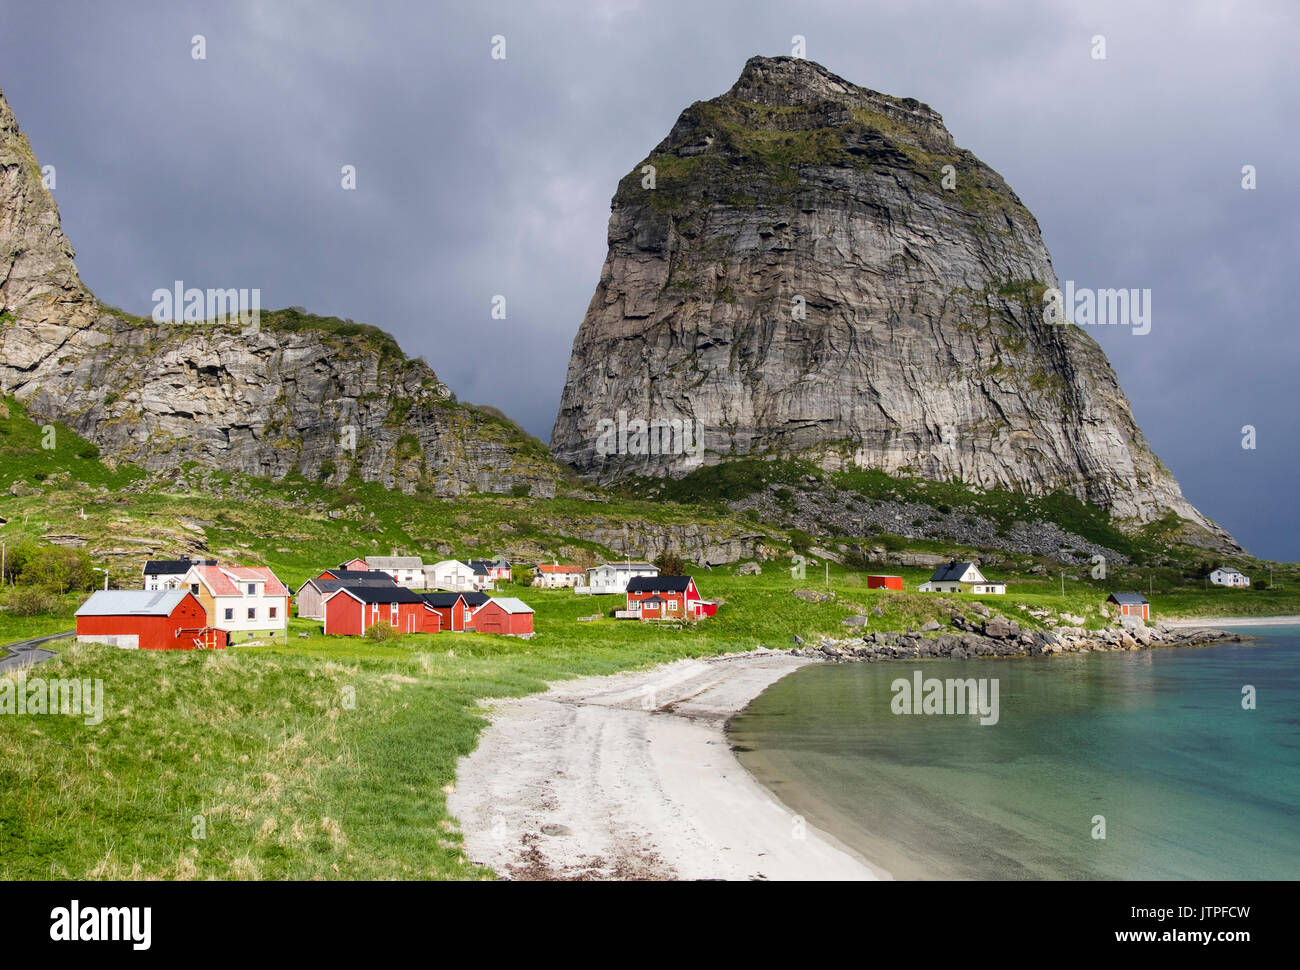 Old former fishing village houses around sandy beach below Trænstaven mountain on Sanna island, Træna, Nordland county, Norway, Scandinavia - Stock Image